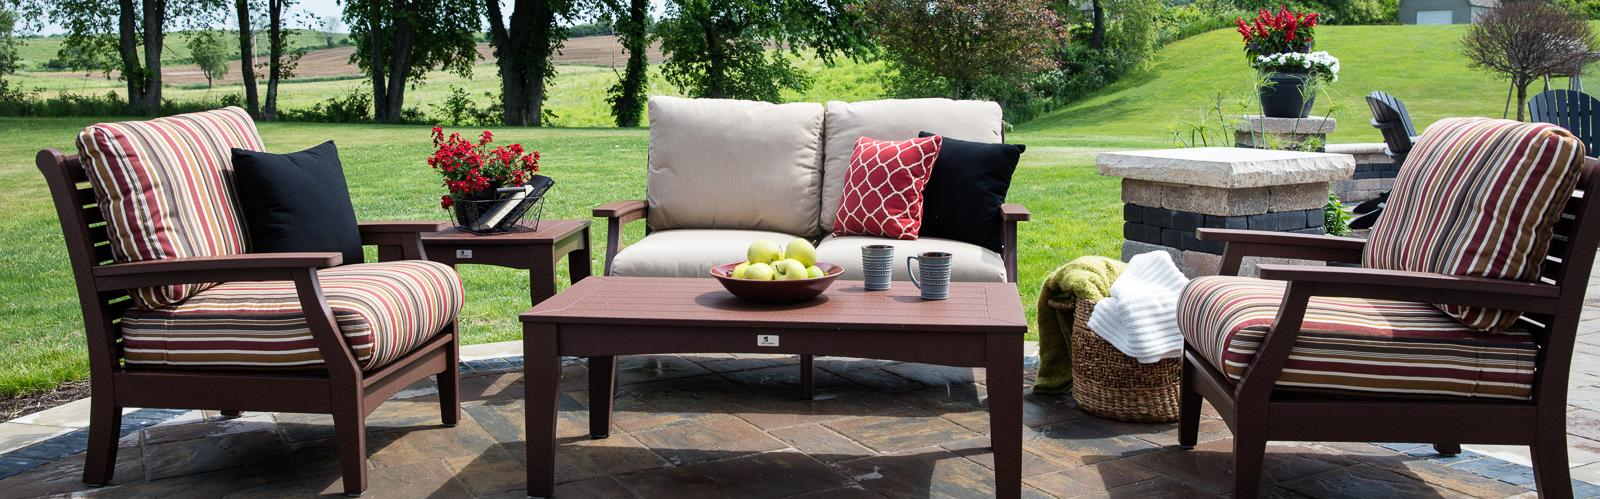 Collection sofa love seat chair ottoman coffee table end table - Classic Terrace Millers Mini Barns